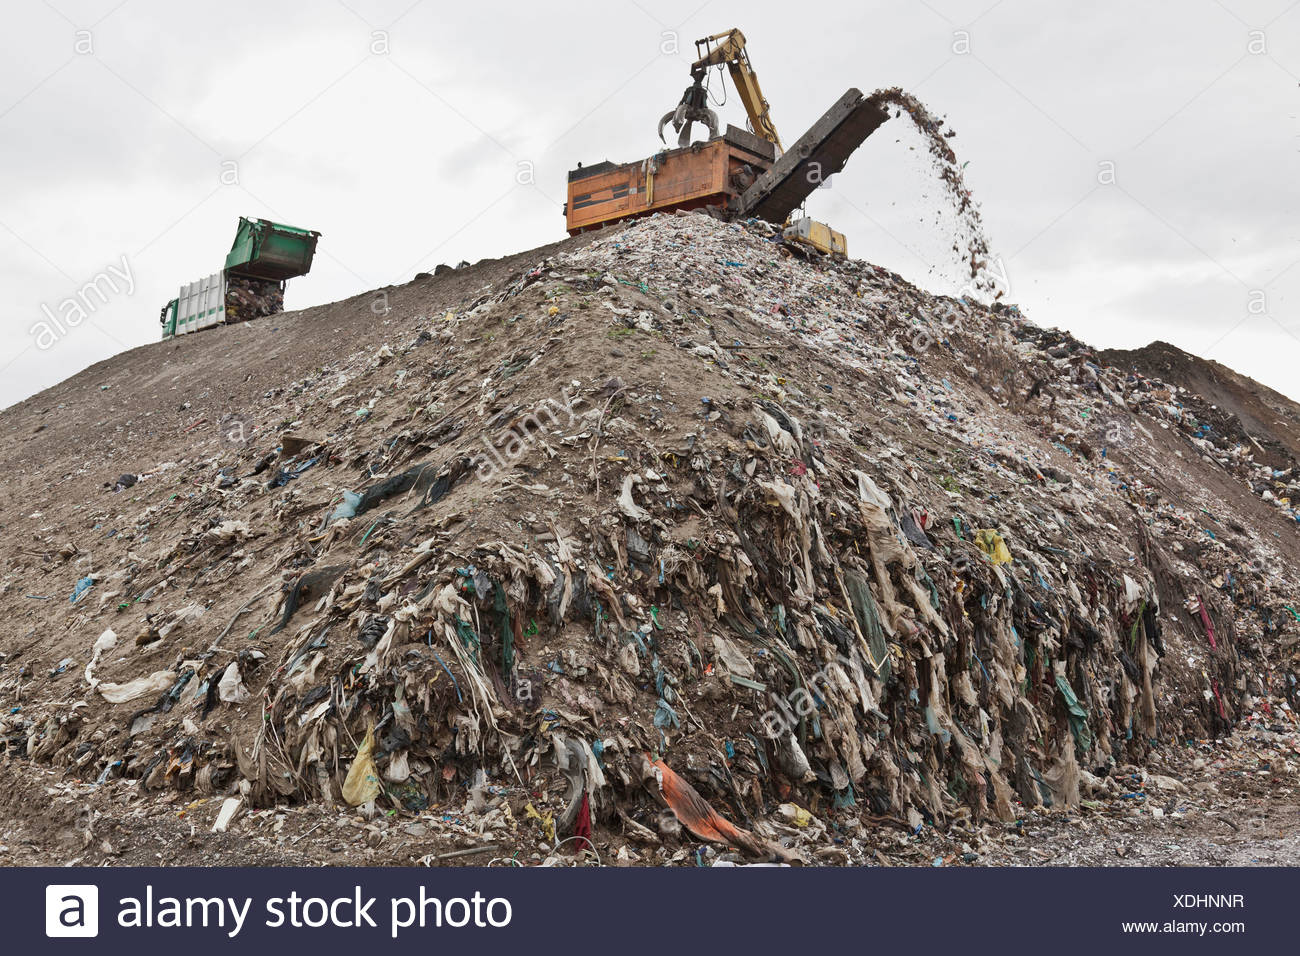 Machinery at garbage collection center - Stock Image